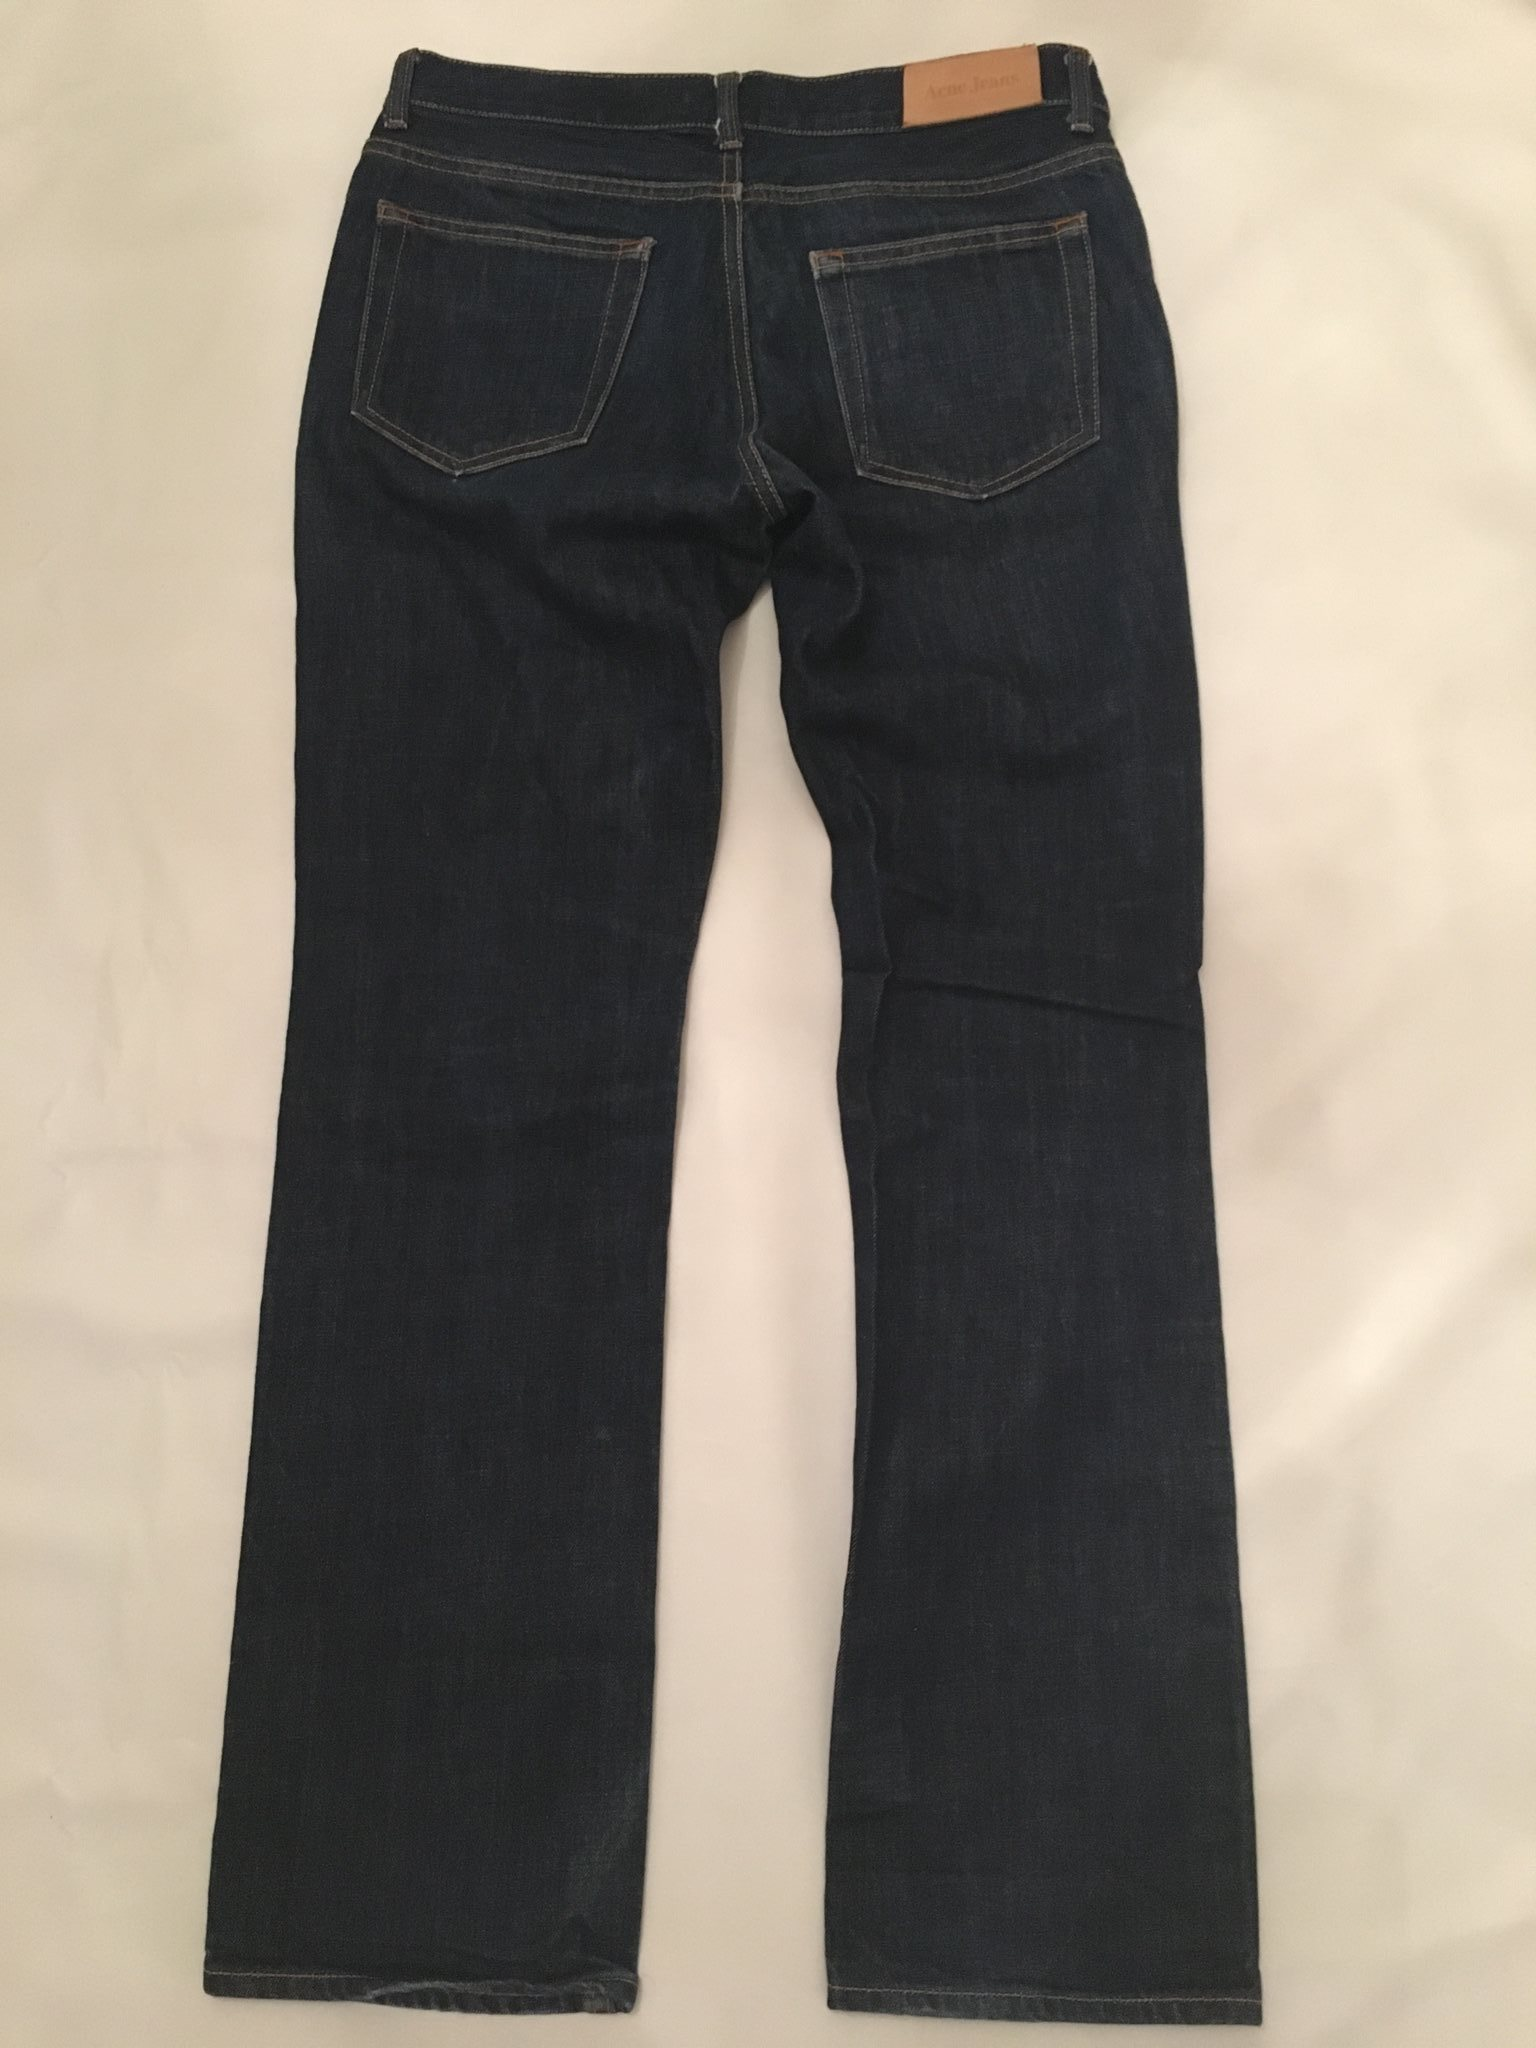 ACNE jeans jeans jeans Mic Another Raw blå strl 32/32 bf50b0